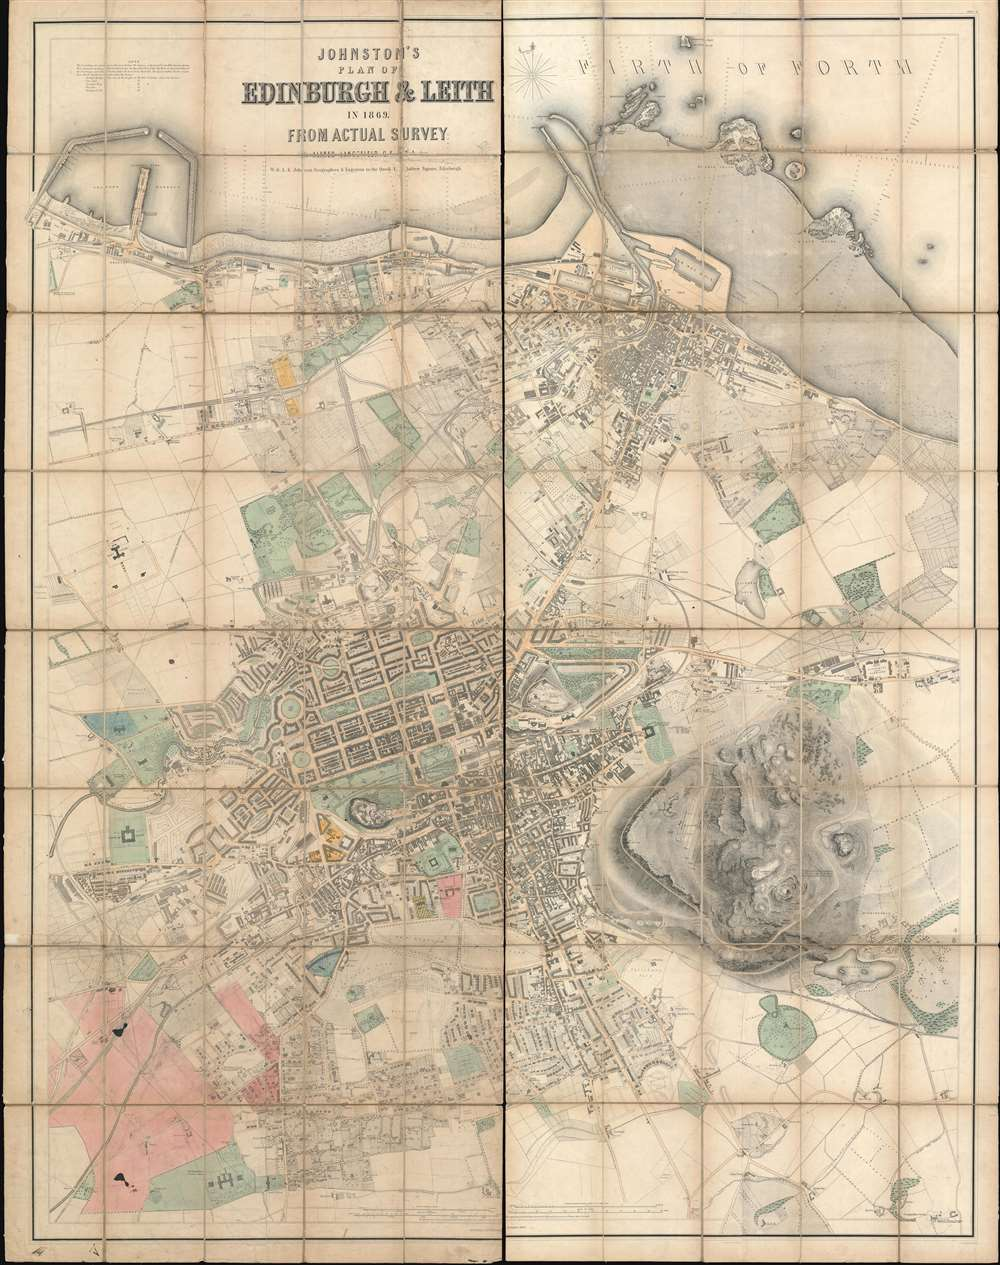 Johnston's Plan of Edinburgh and Leith in 1869. - Main View